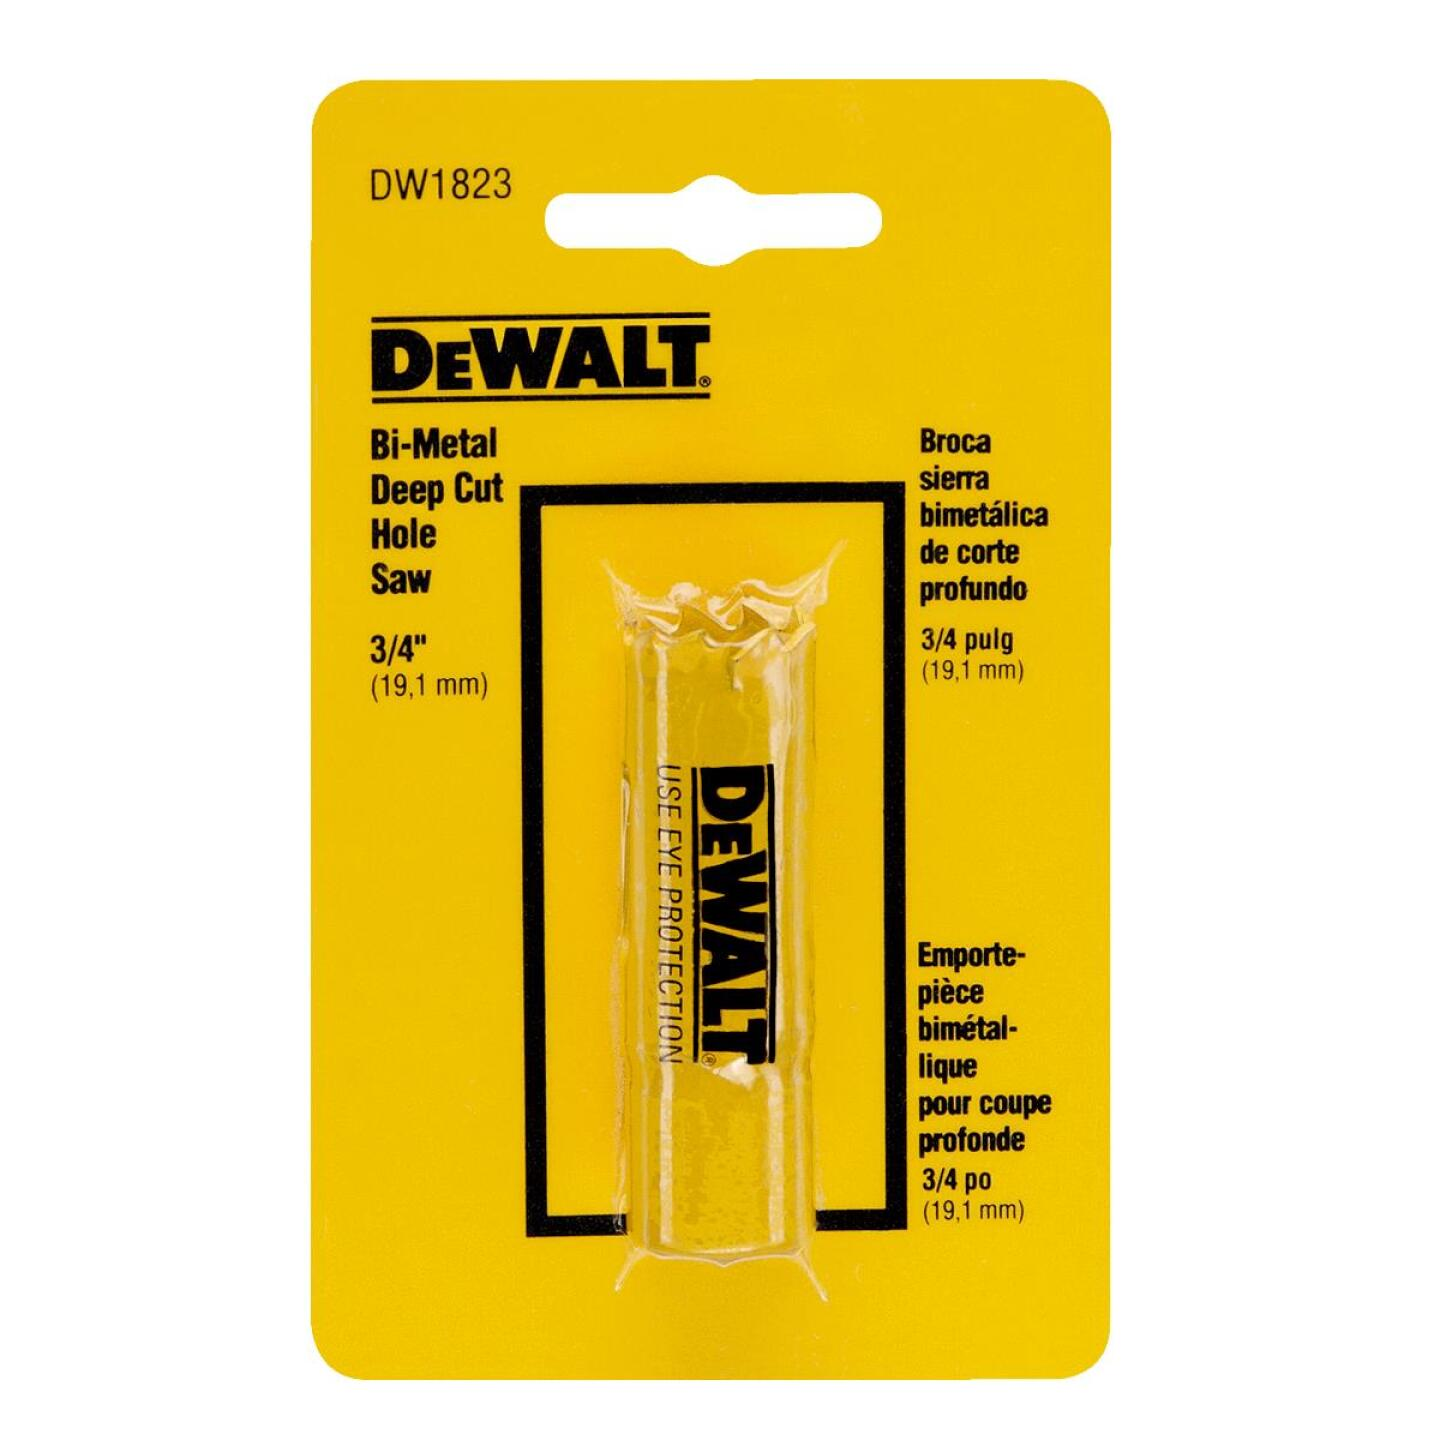 DeWalt 3/4 In. Bi-Metal Hole Saw Image 1